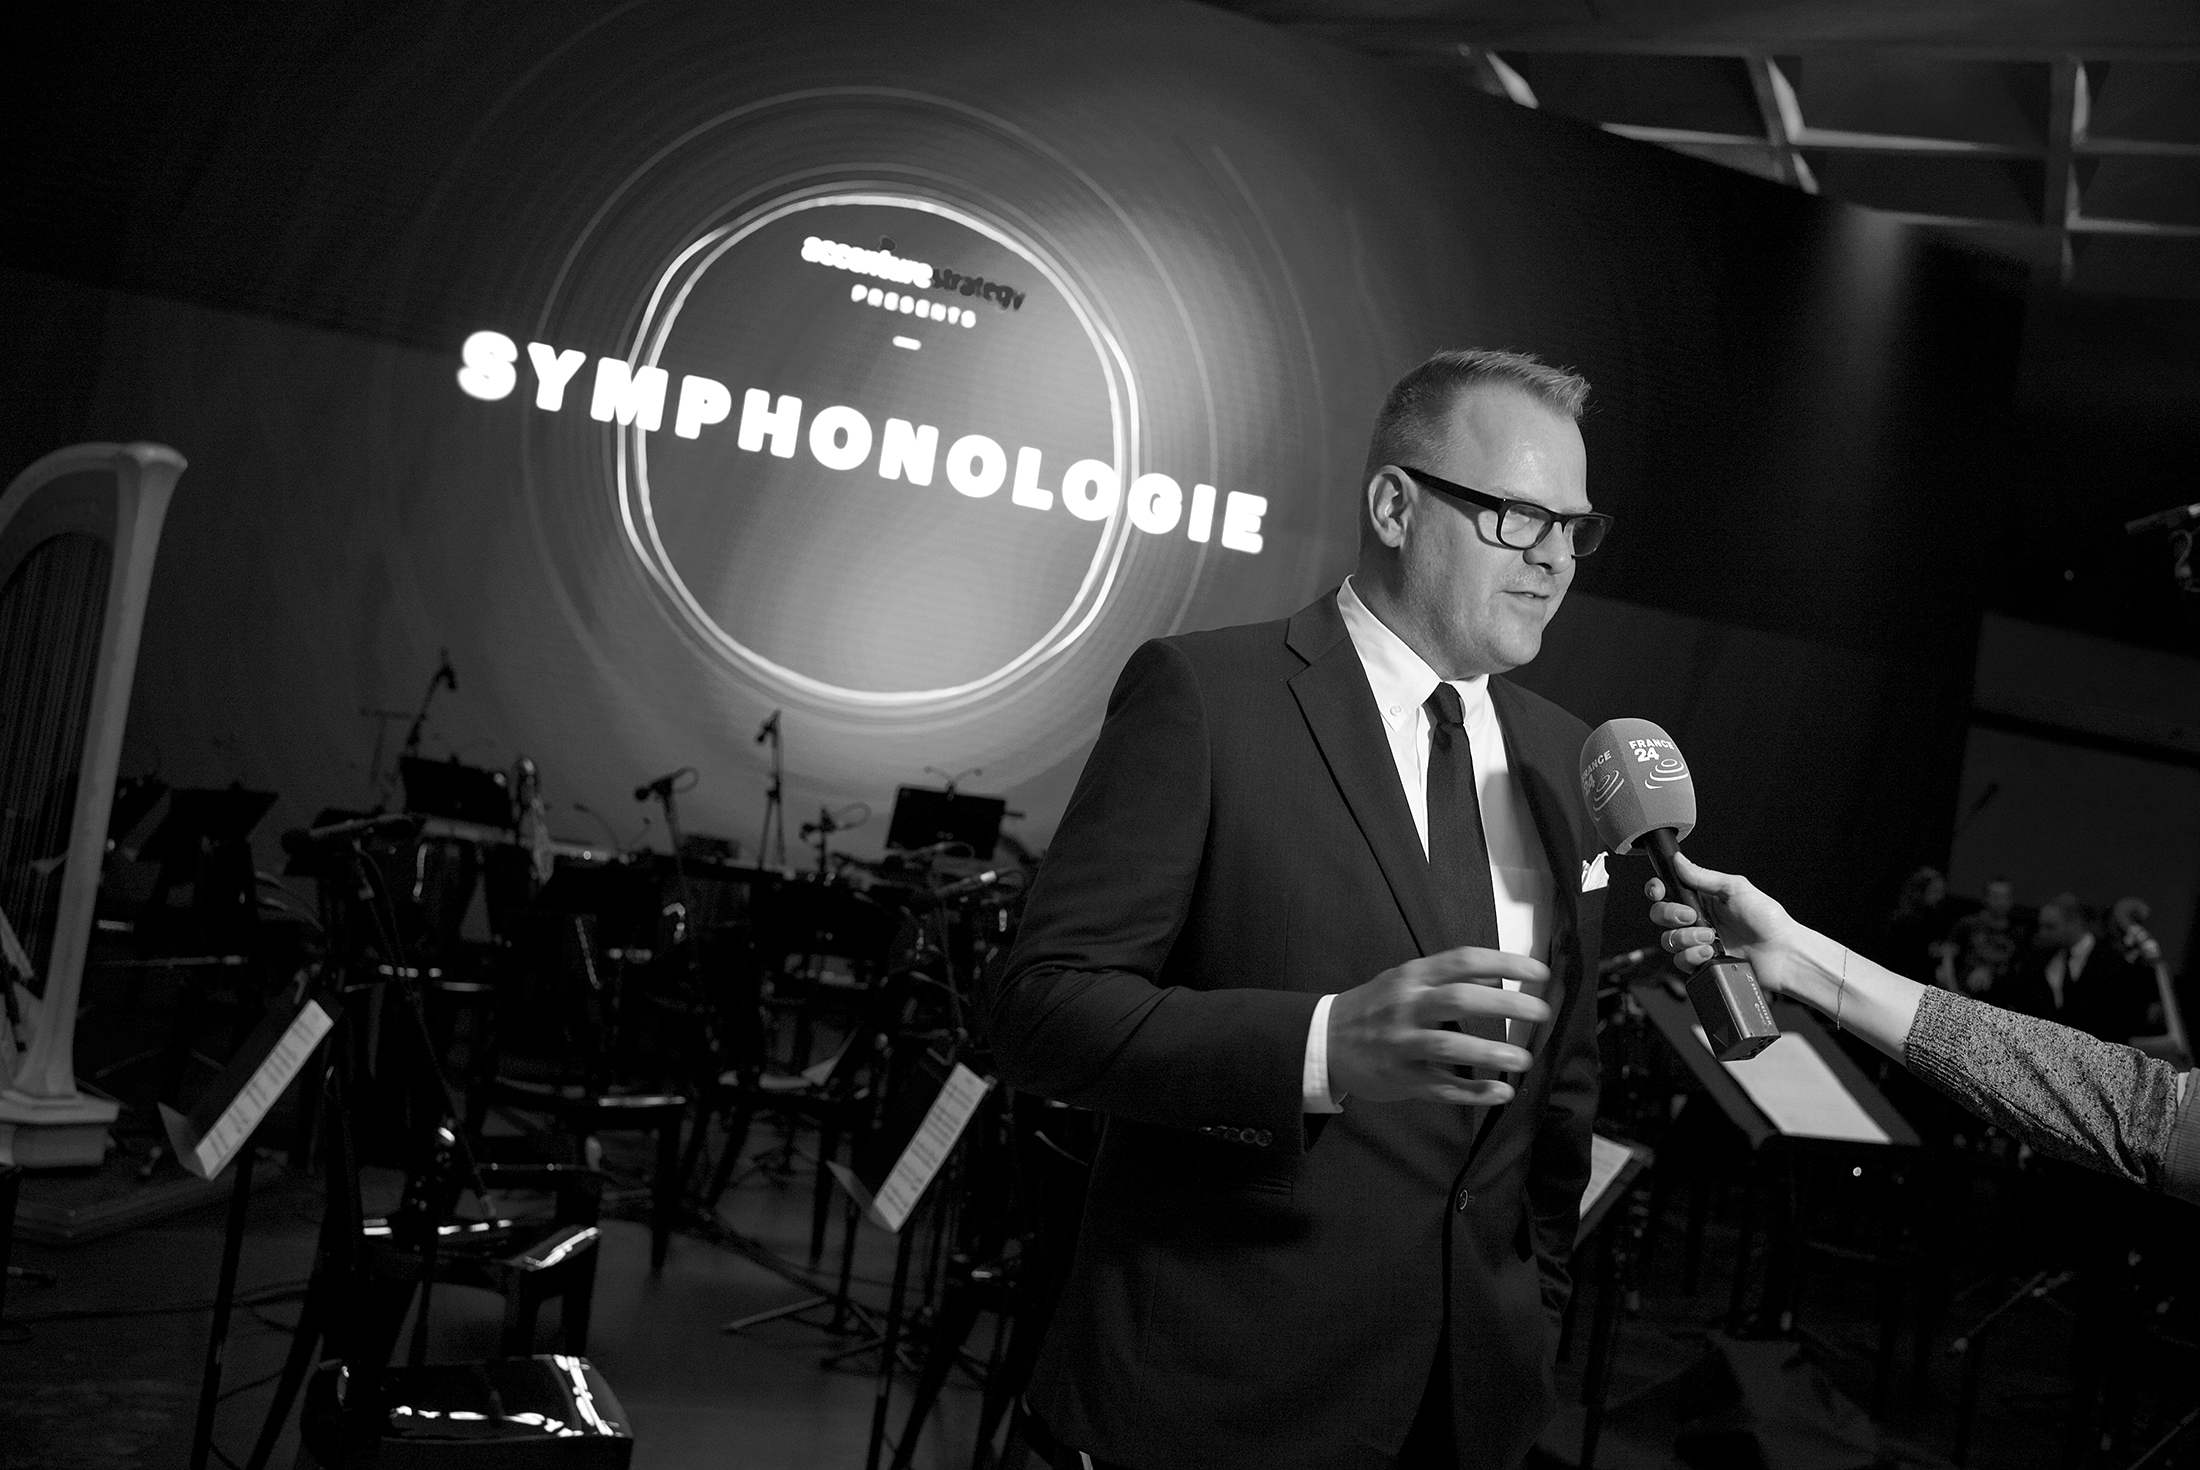 Brian Jones of Bang Music, discusses the  Symphonologie  project with French media.